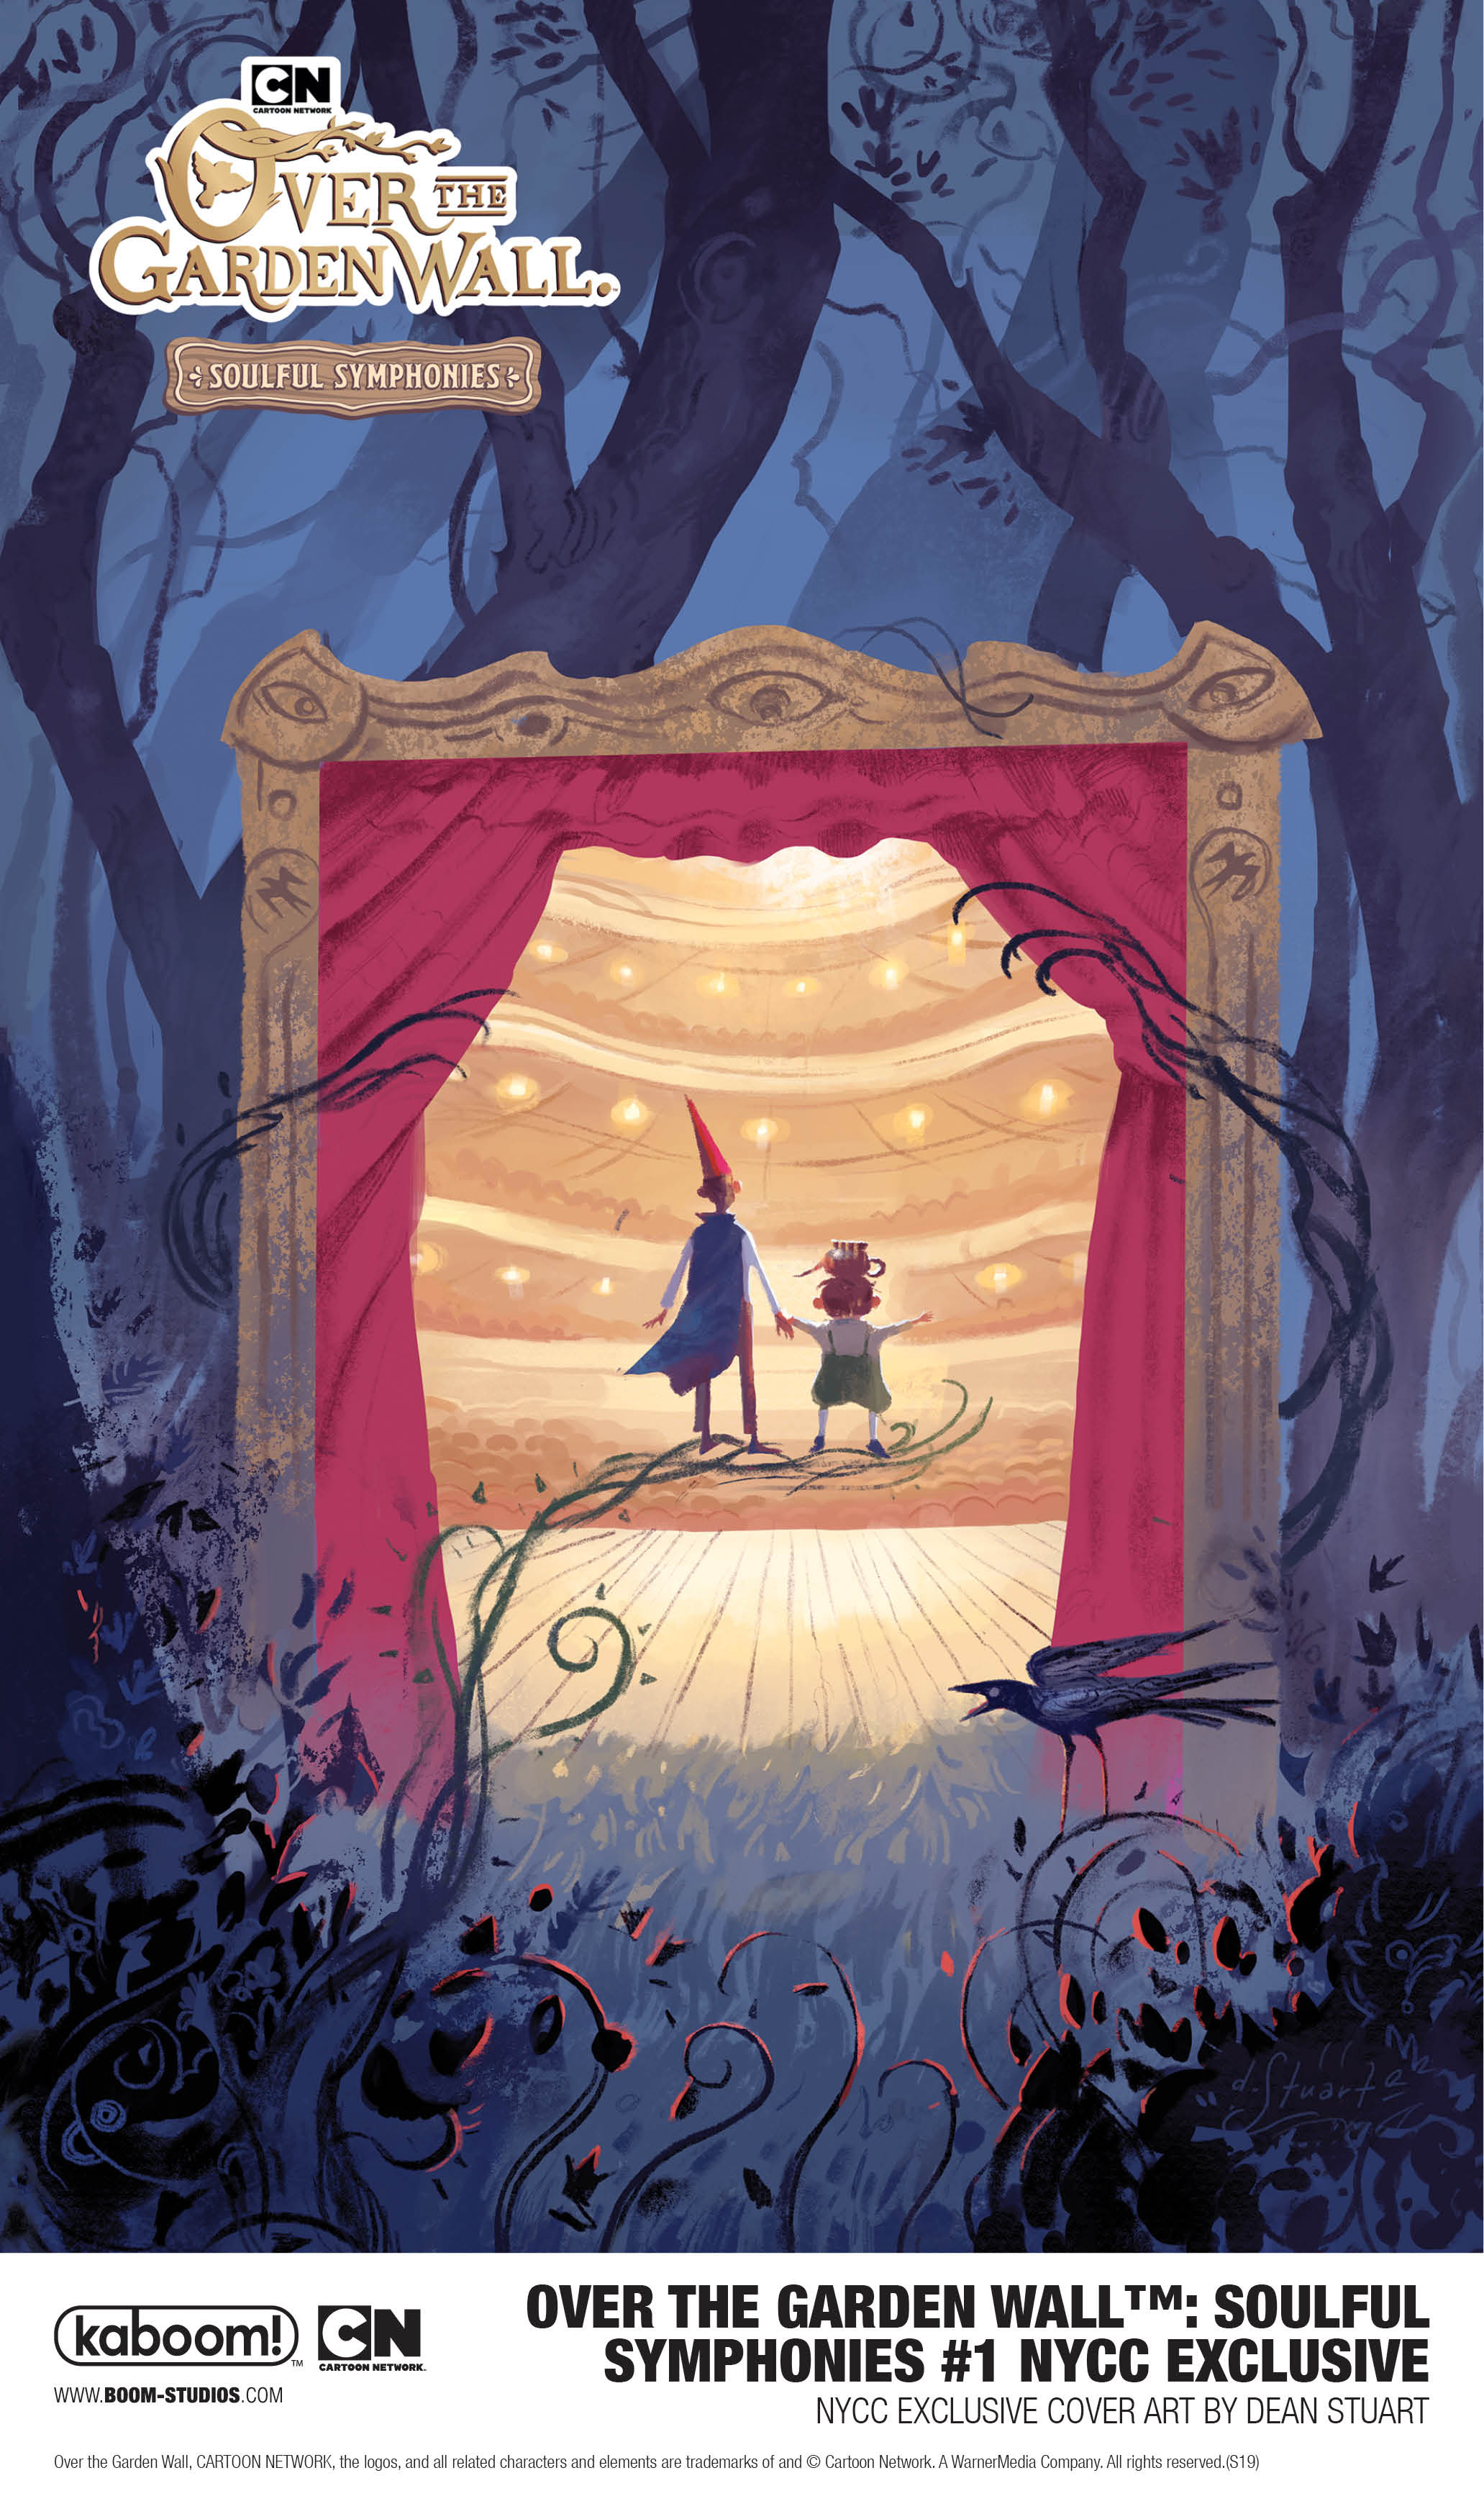 BOOM! Studios NYCC exclusives: Over the Garden Wall™: Soulful Symphonies #1 NYCC Exclusive Variant Cover